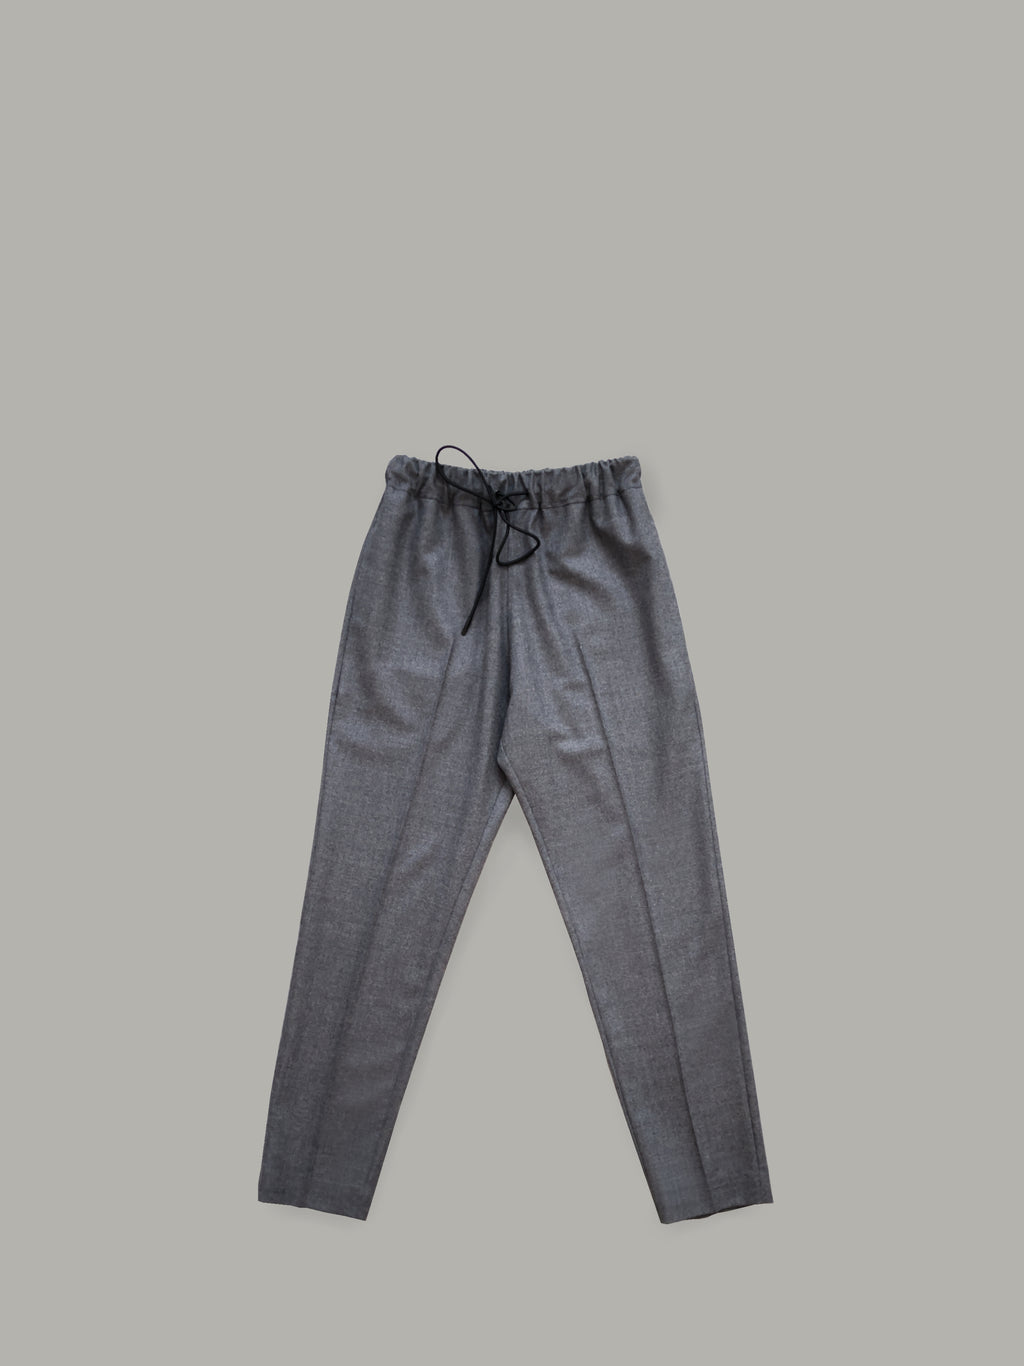 GREY WOOL TROUSERS WITH DRAWSTRING WAISTBAND